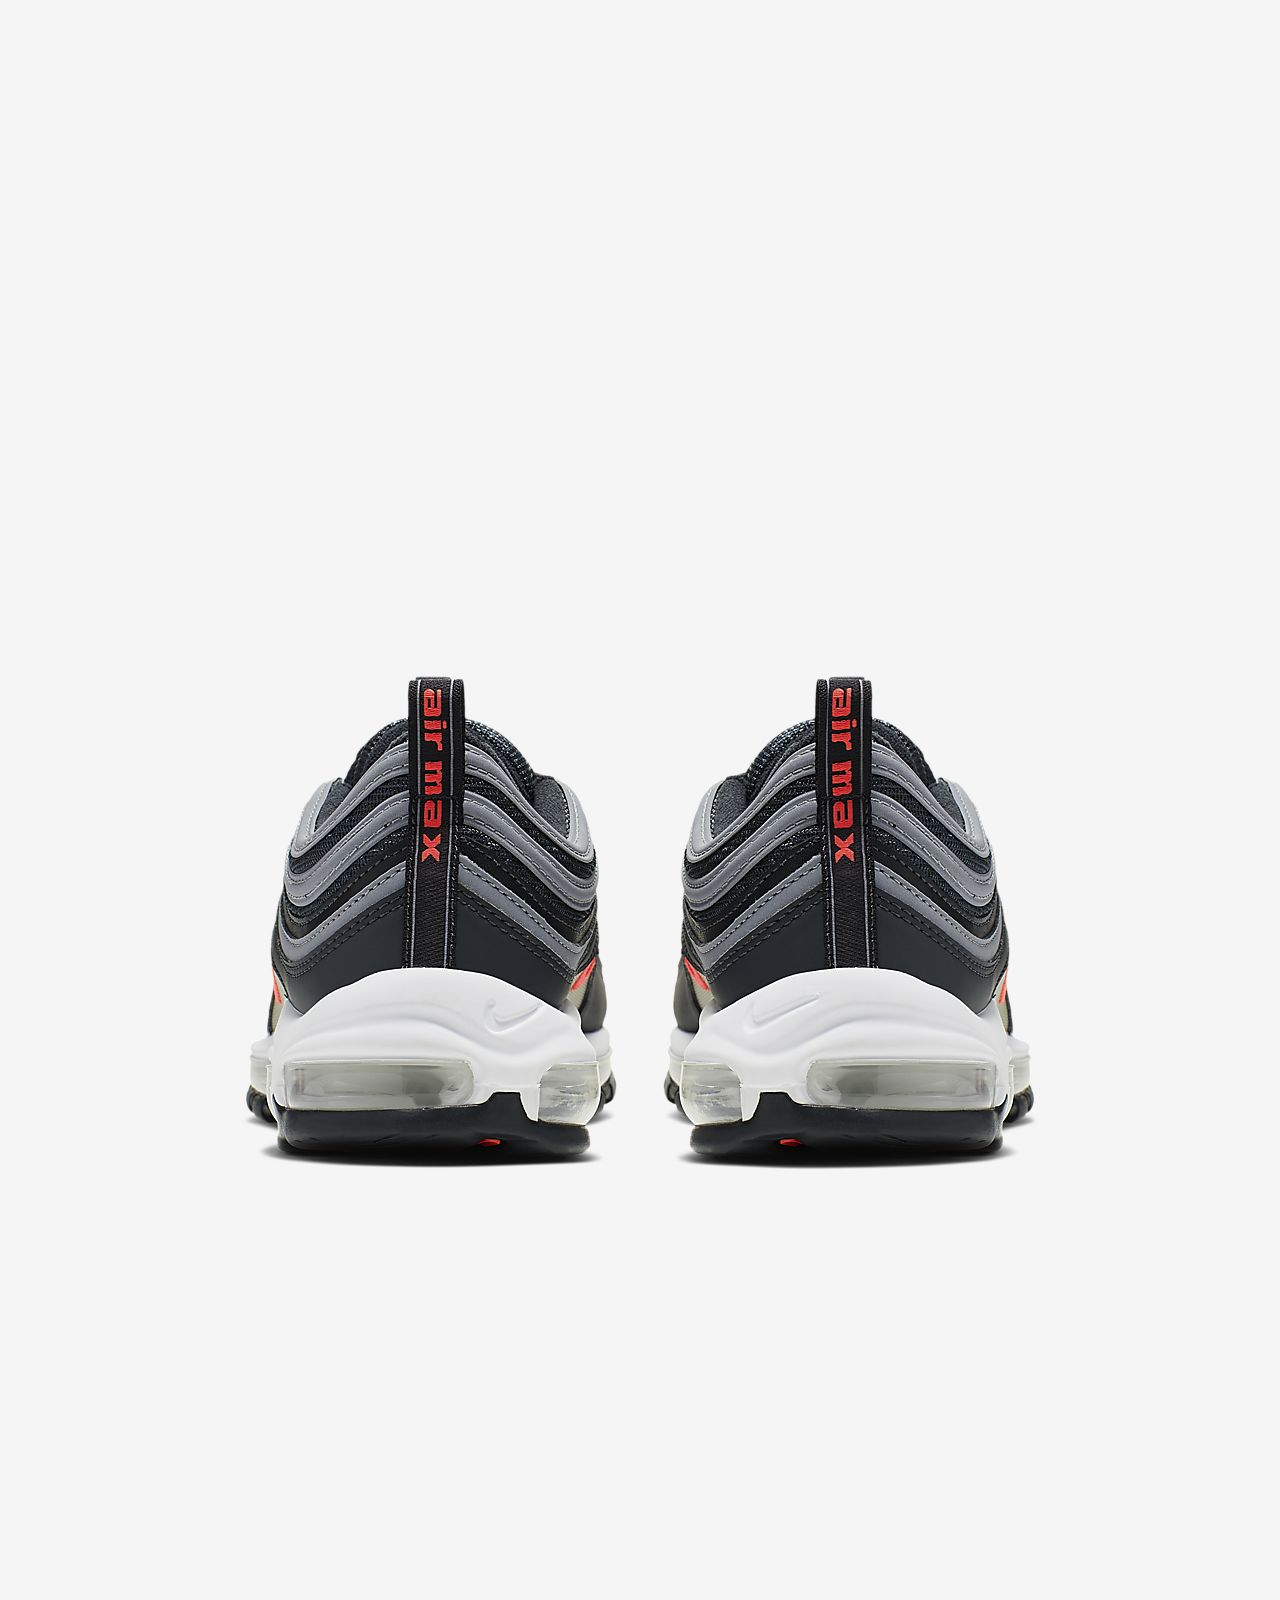 size 40 2edcc 816a2 Low Resolution Nike Air Max 97 Essential Men s Shoe Nike Air Max 97  Essential Men s Shoe